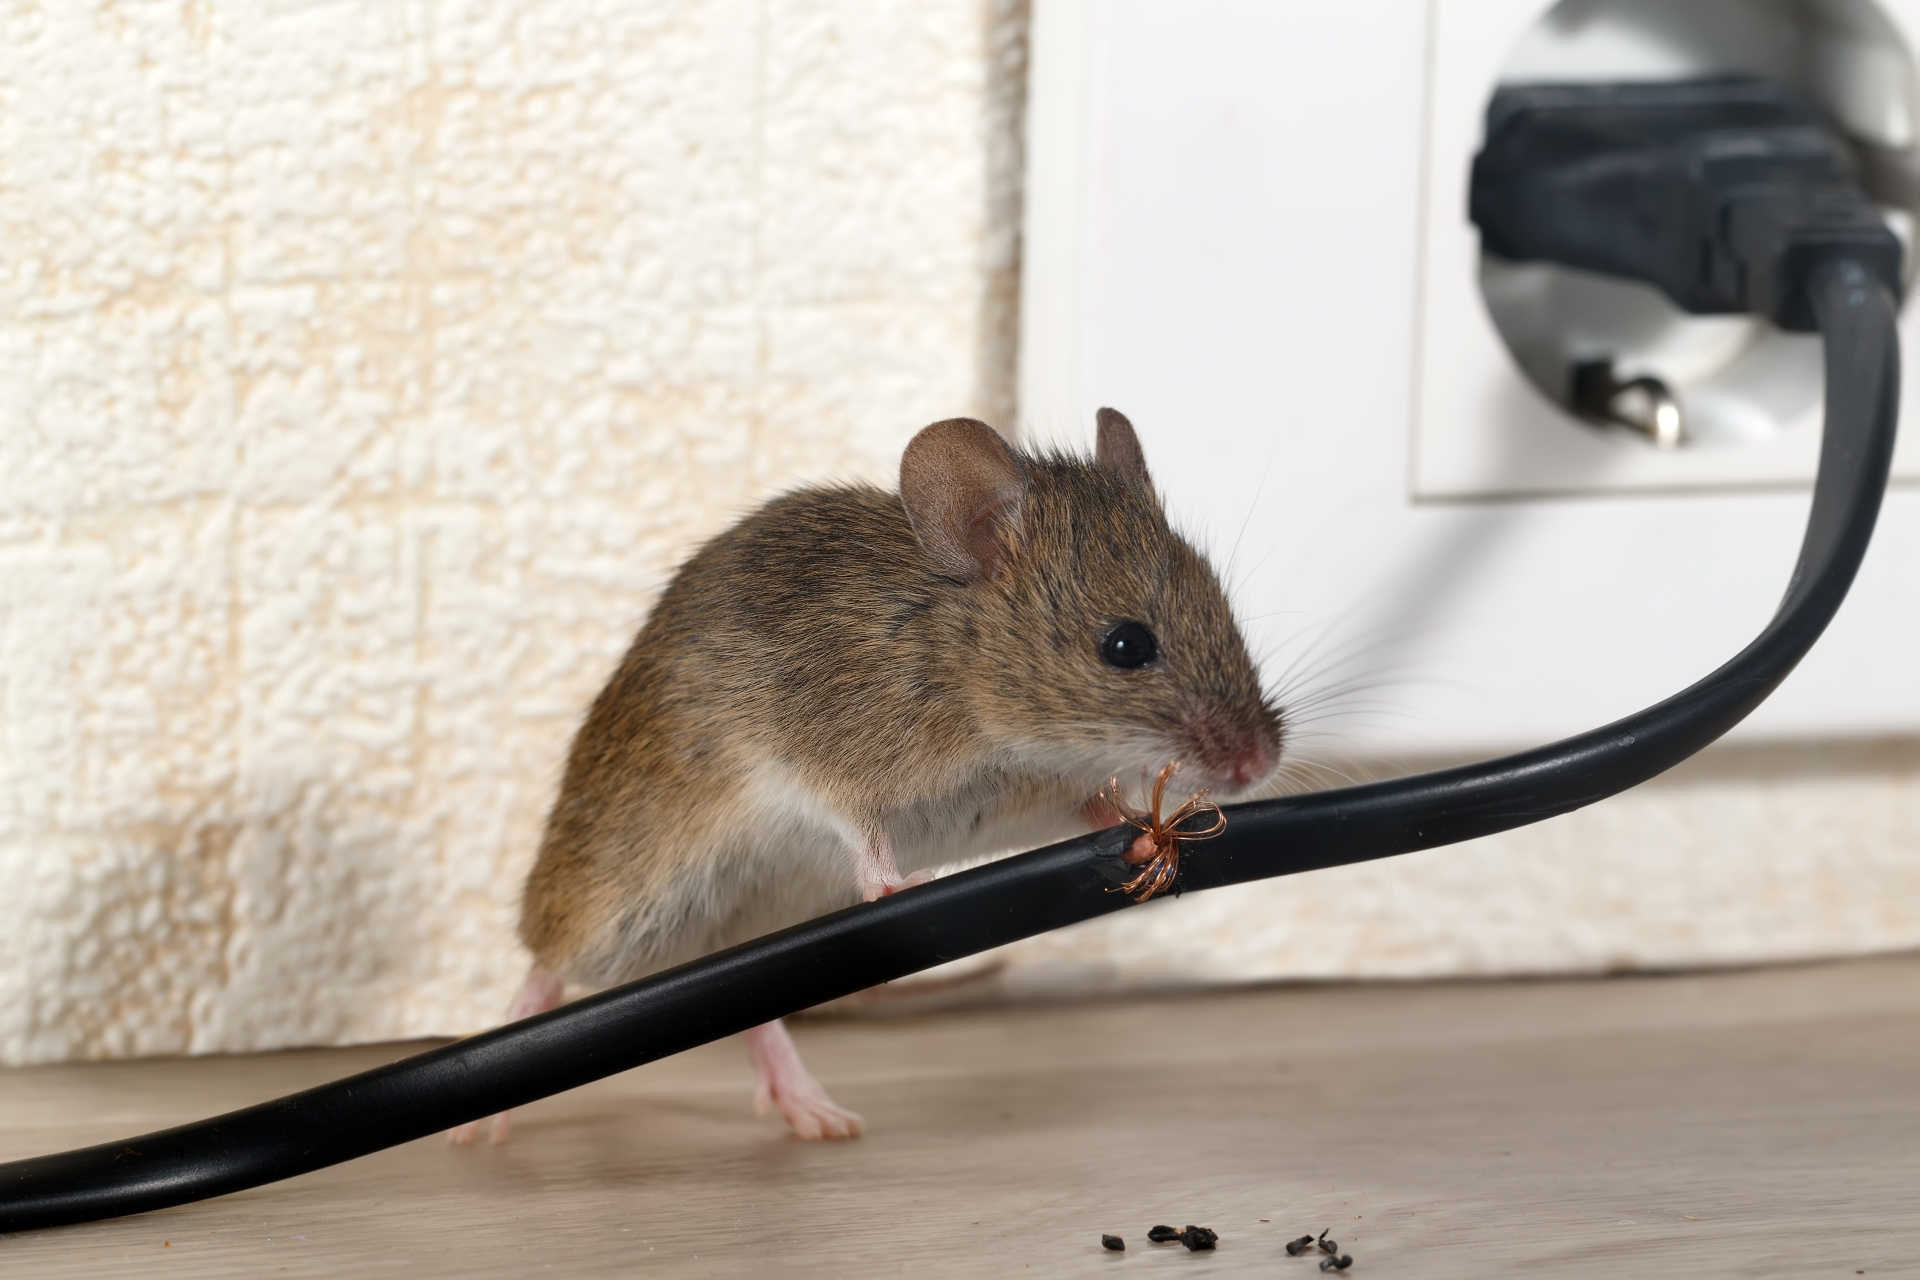 Mice Infestation, Pest Control in Clapham, SW4. Call Now 020 8166 9746